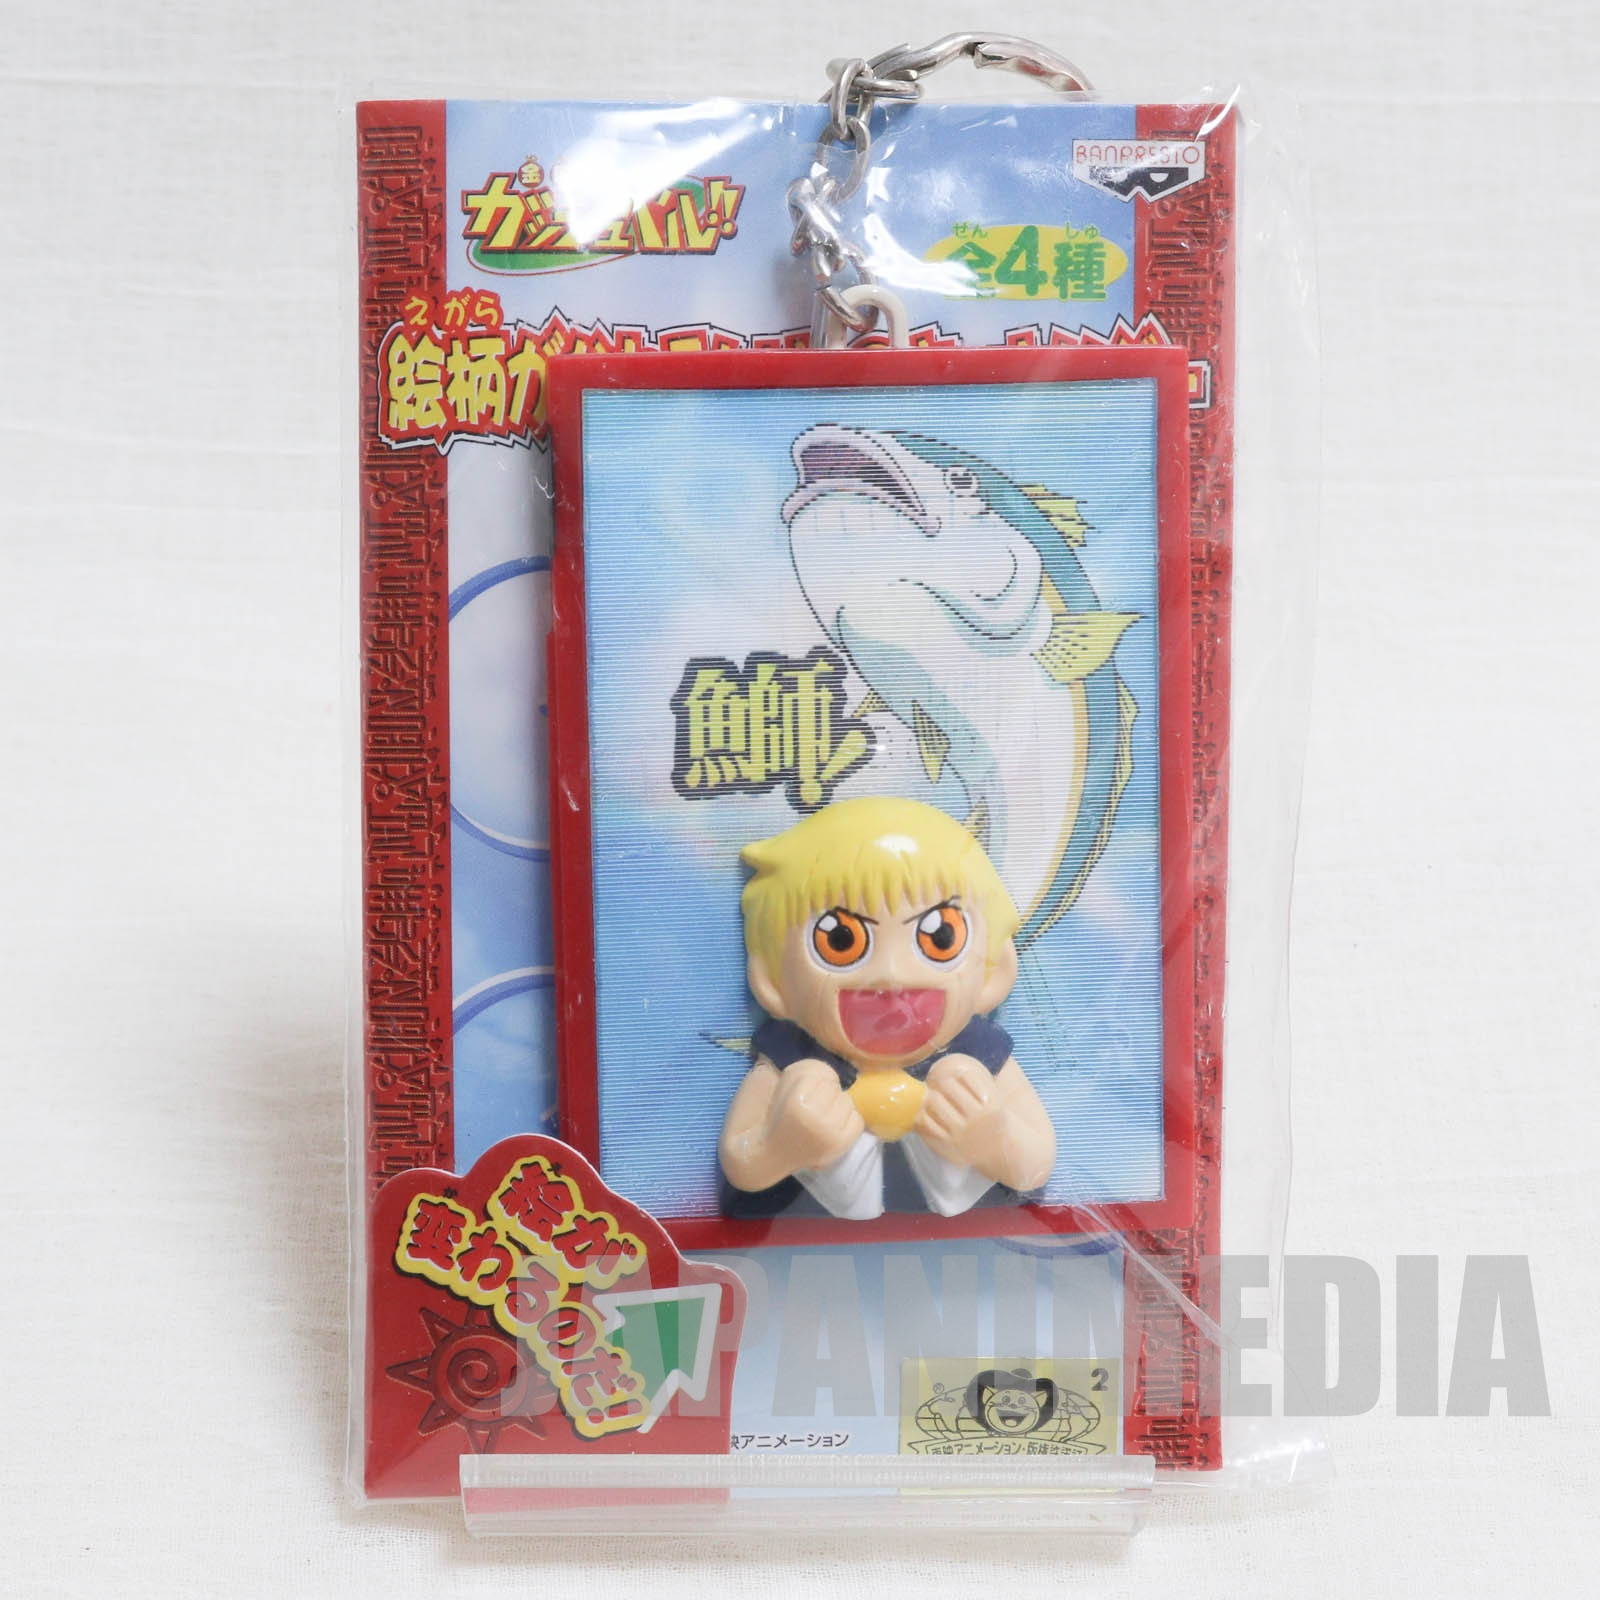 Zatch Bell! Zatch Bell (Yellowtail & Vulcan 300) Change Relief Keychain JAPAN ANIME